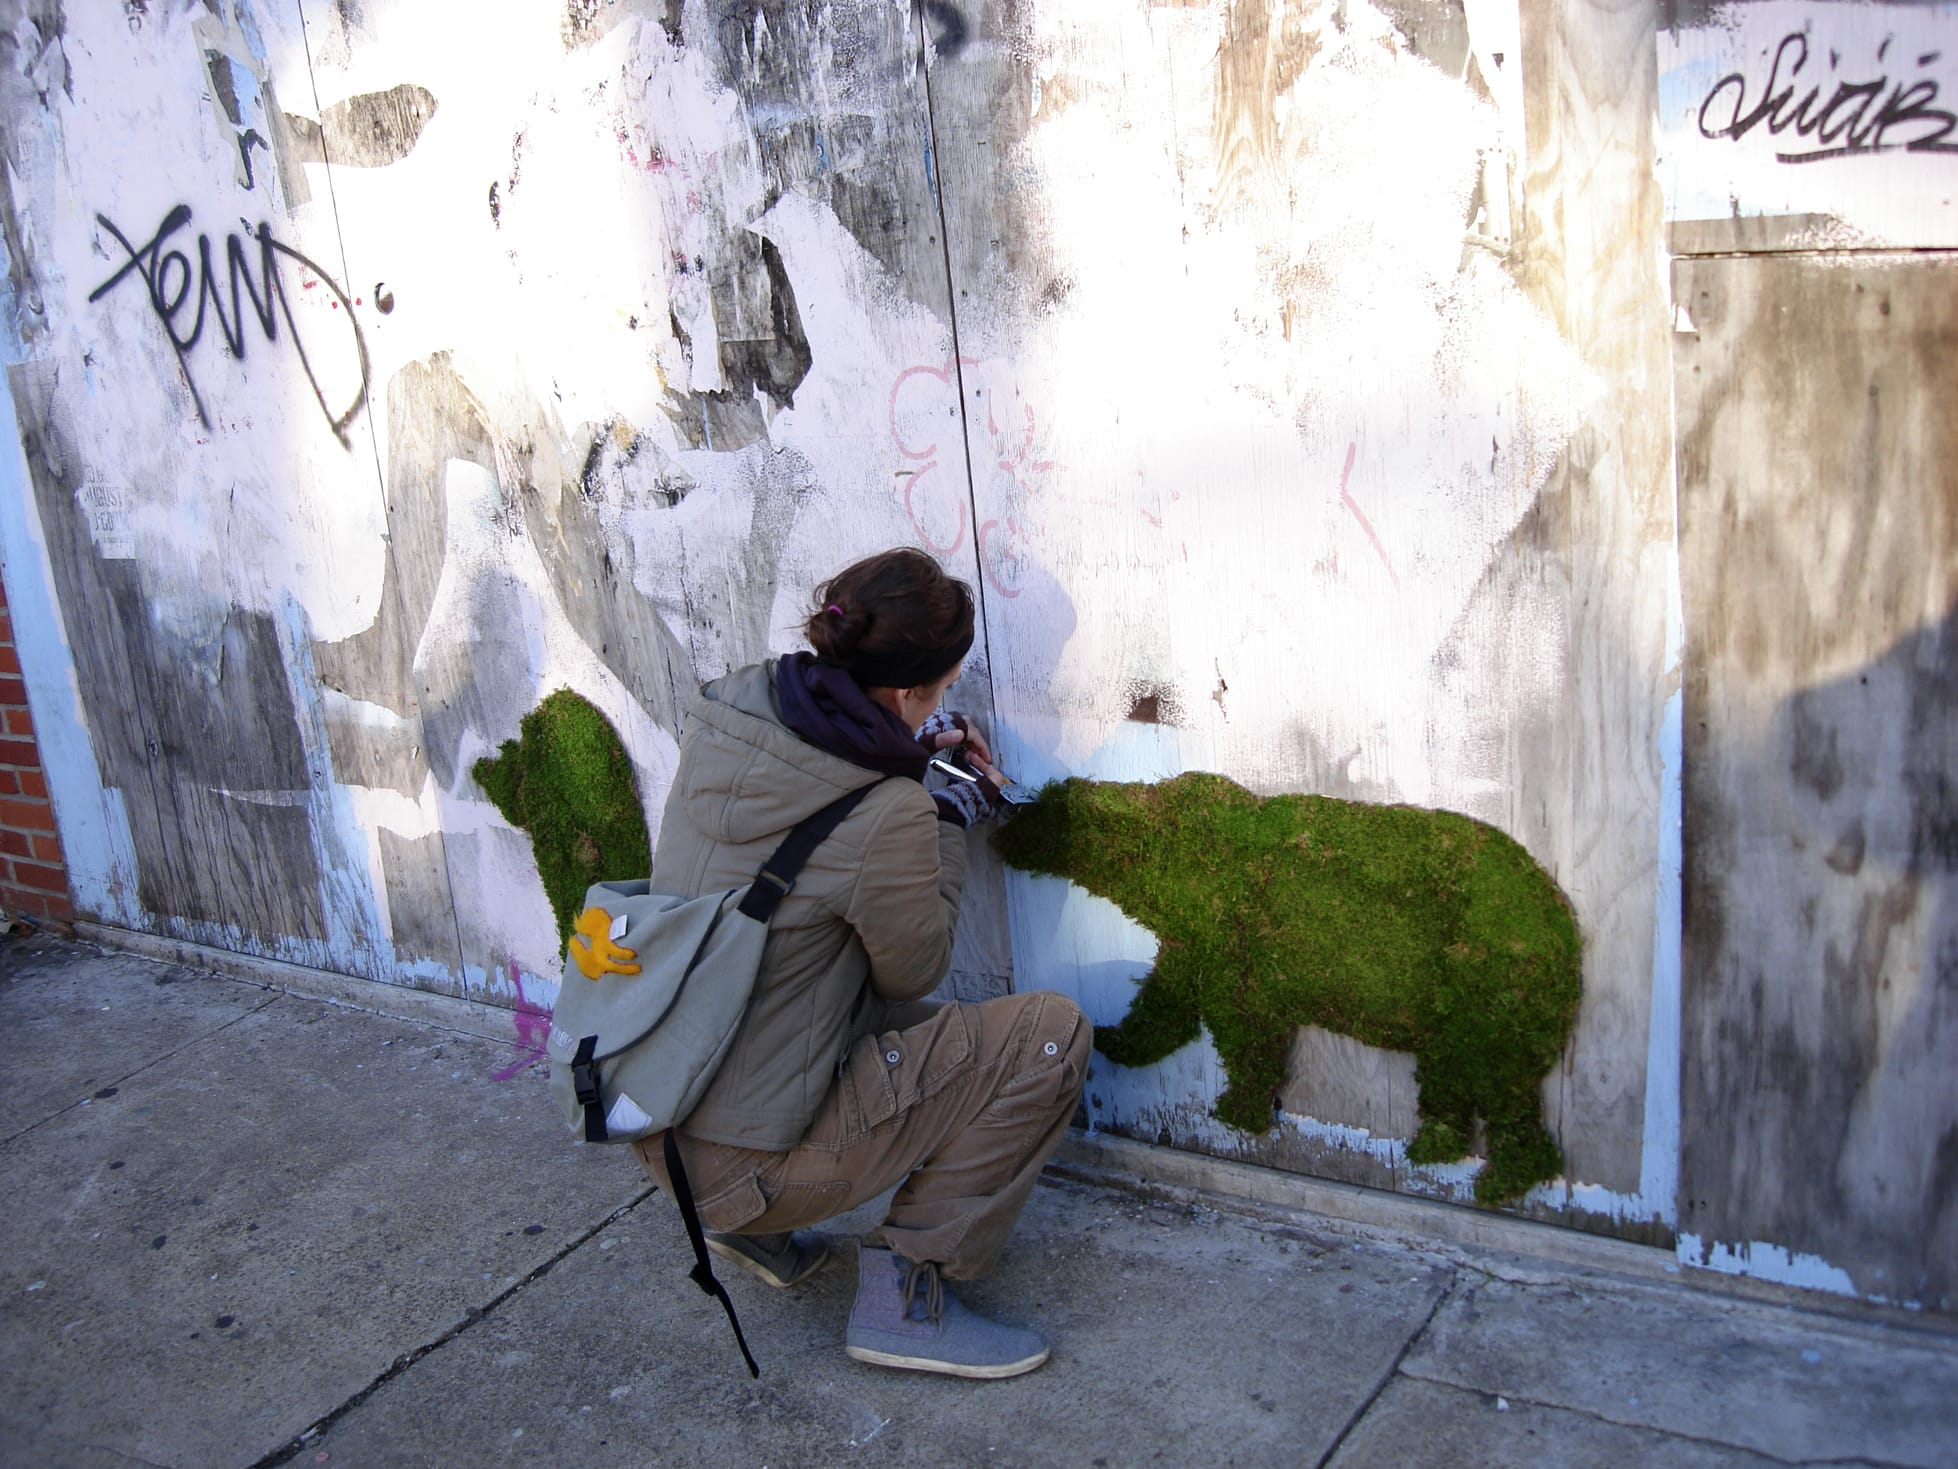 This Homemade Graffiti Looks Awesome But Wait A Few Months And It